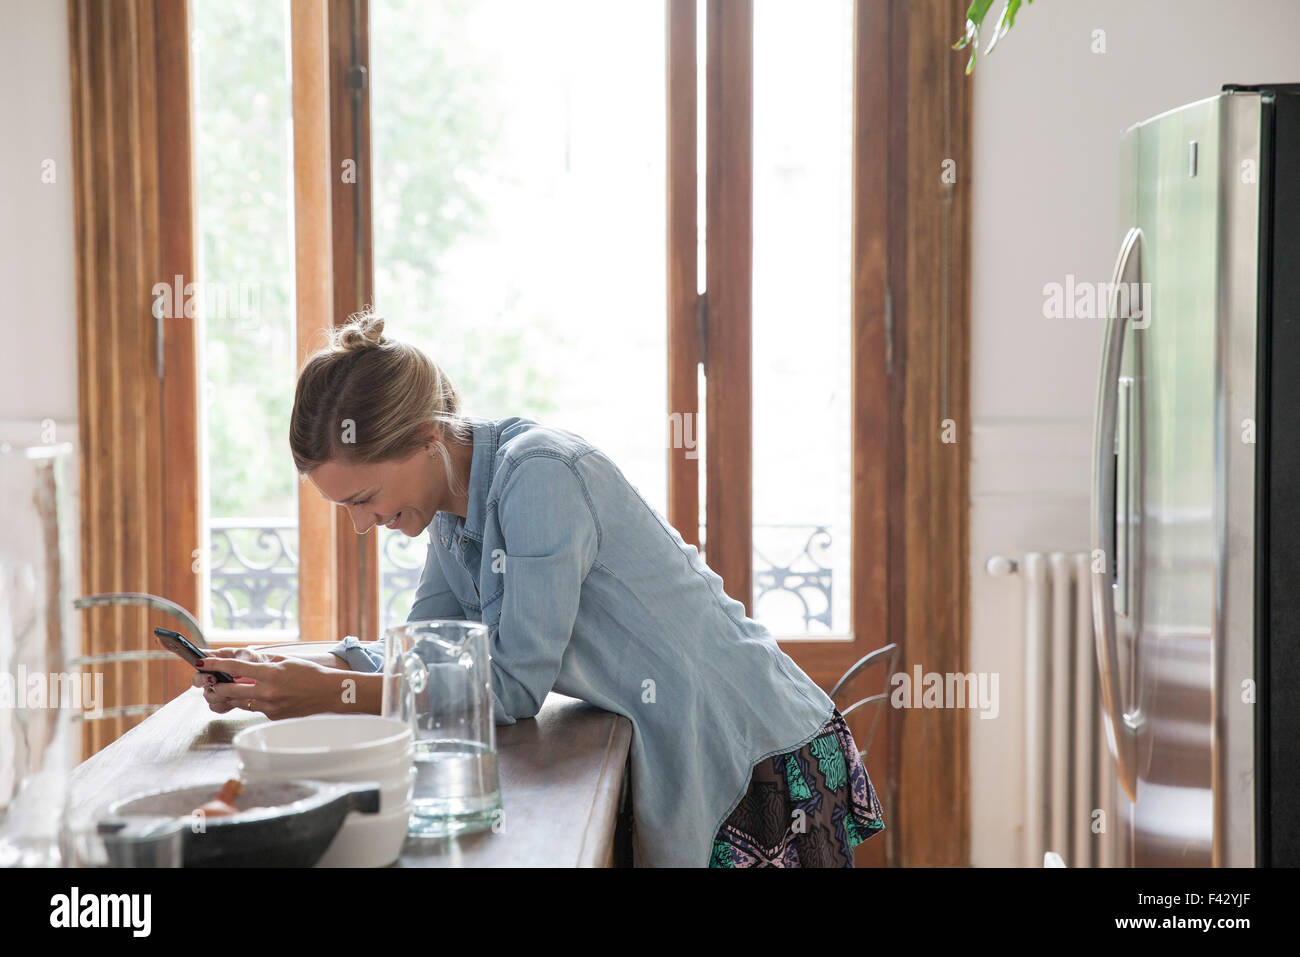 Young woman using smartphone in kitchen - Stock Image